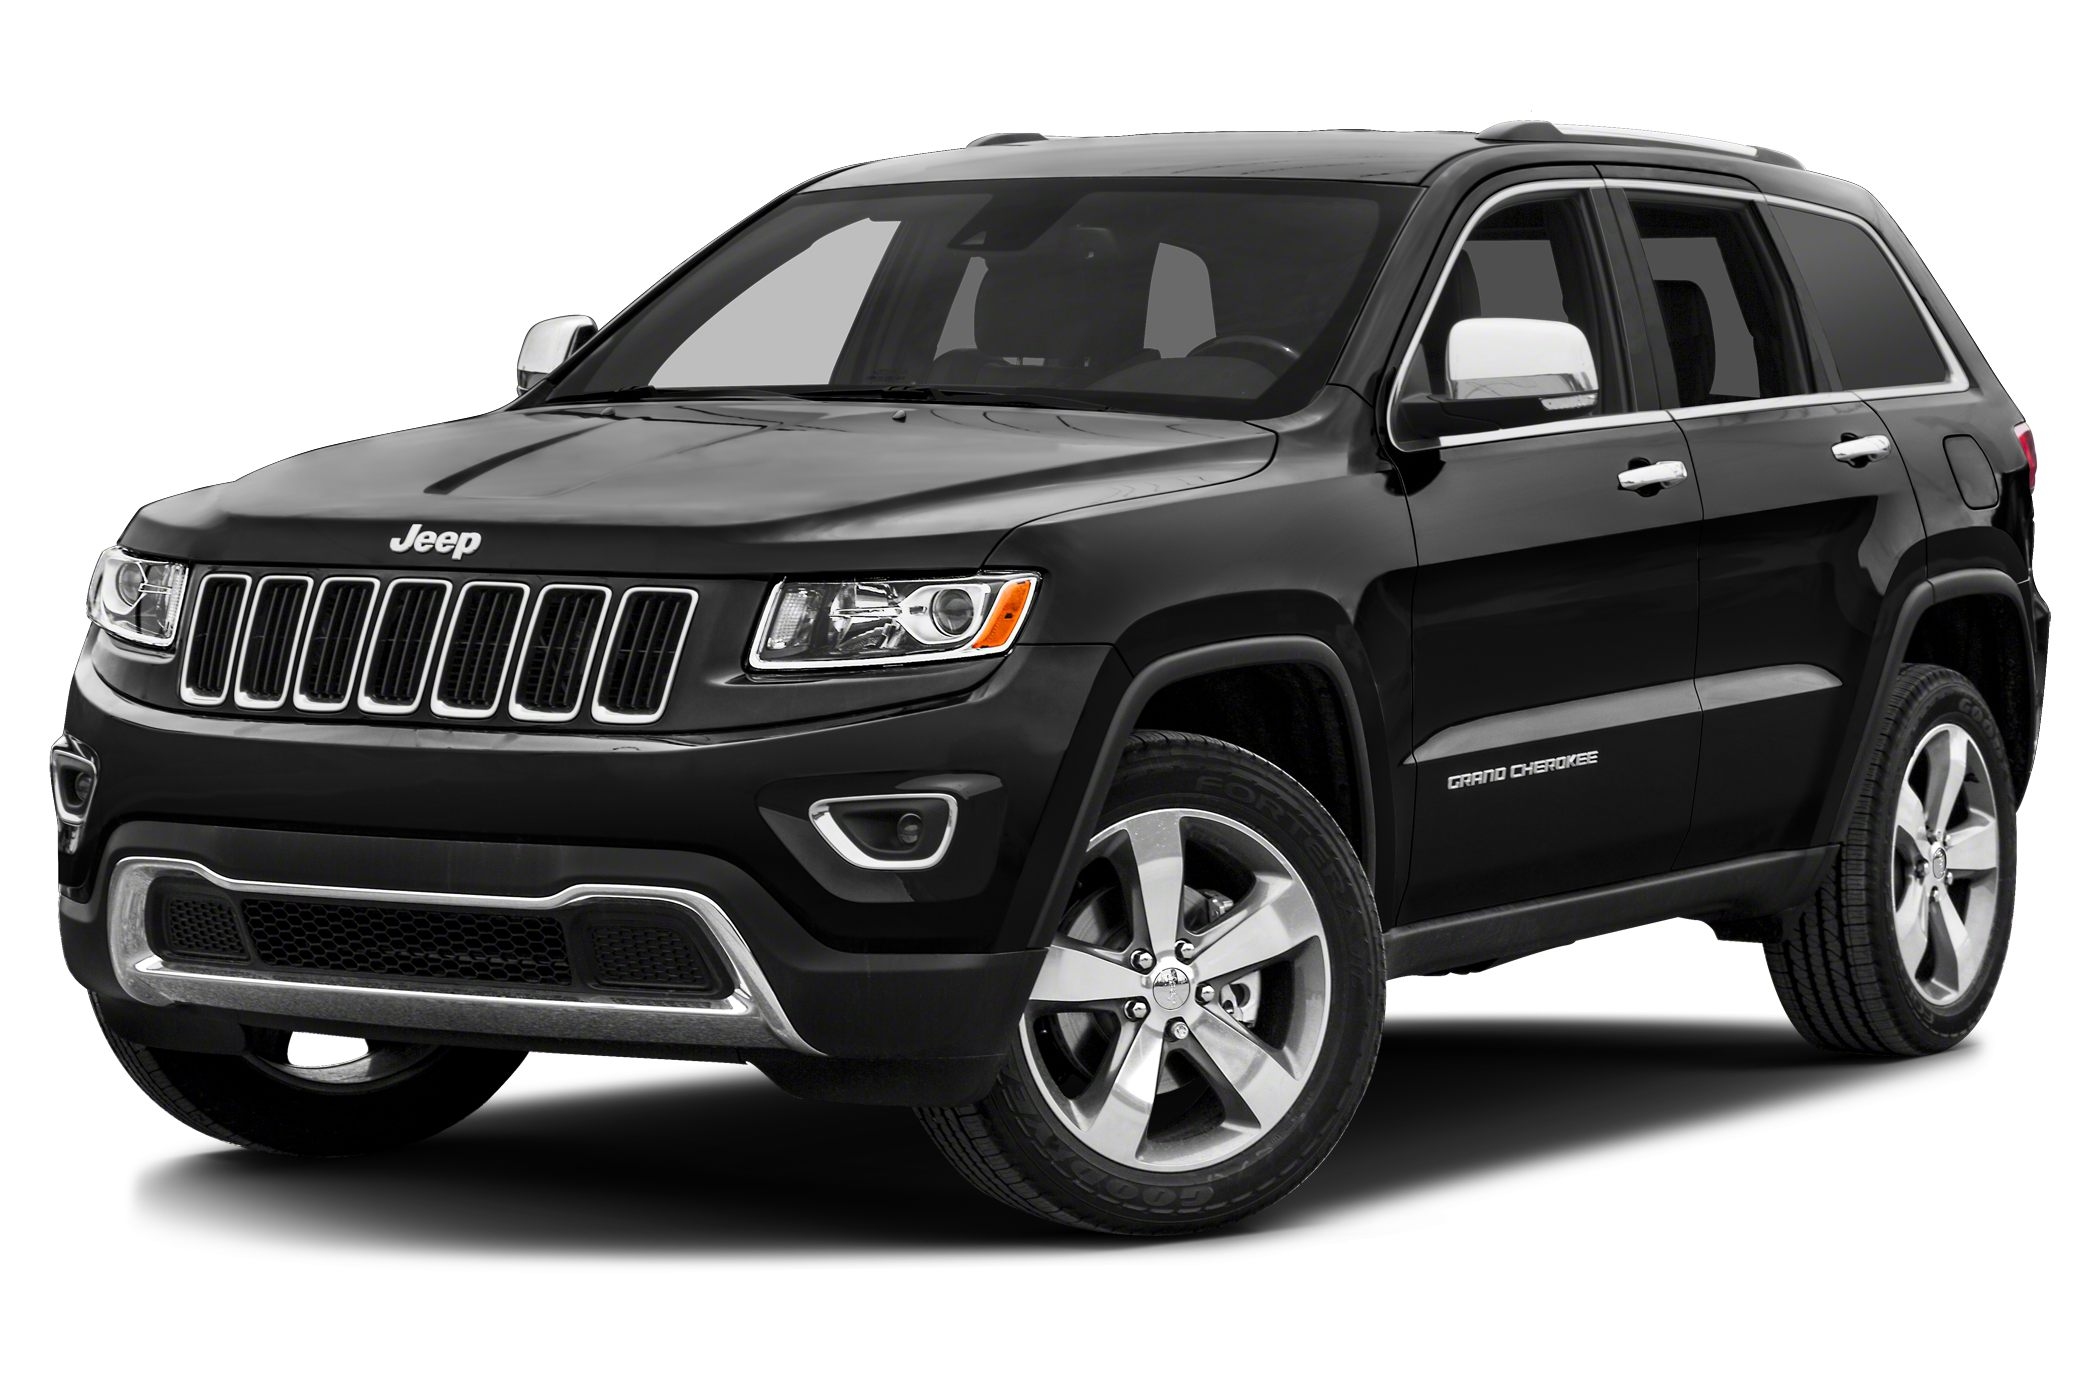 2014 Jeep Grand Cherokee Laredo SUV for sale in Watertown for $38,585 with 0 miles.